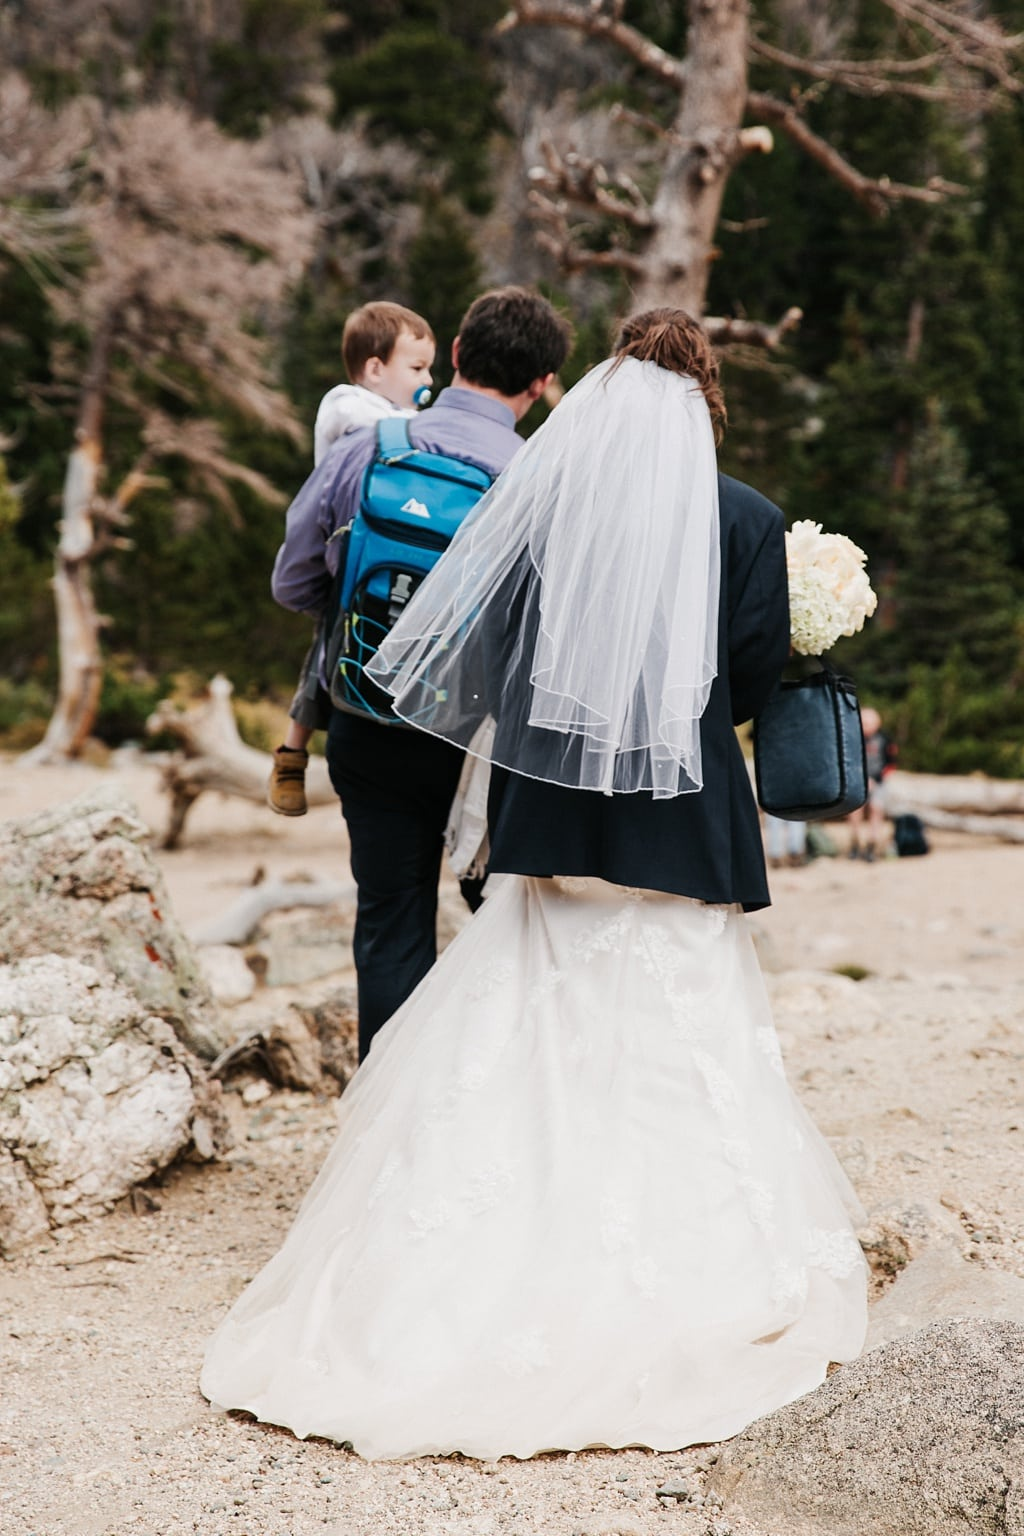 Bride and groom hiking back with their son after their St. Mary's Glacier elopement hiking wedding in Colorado